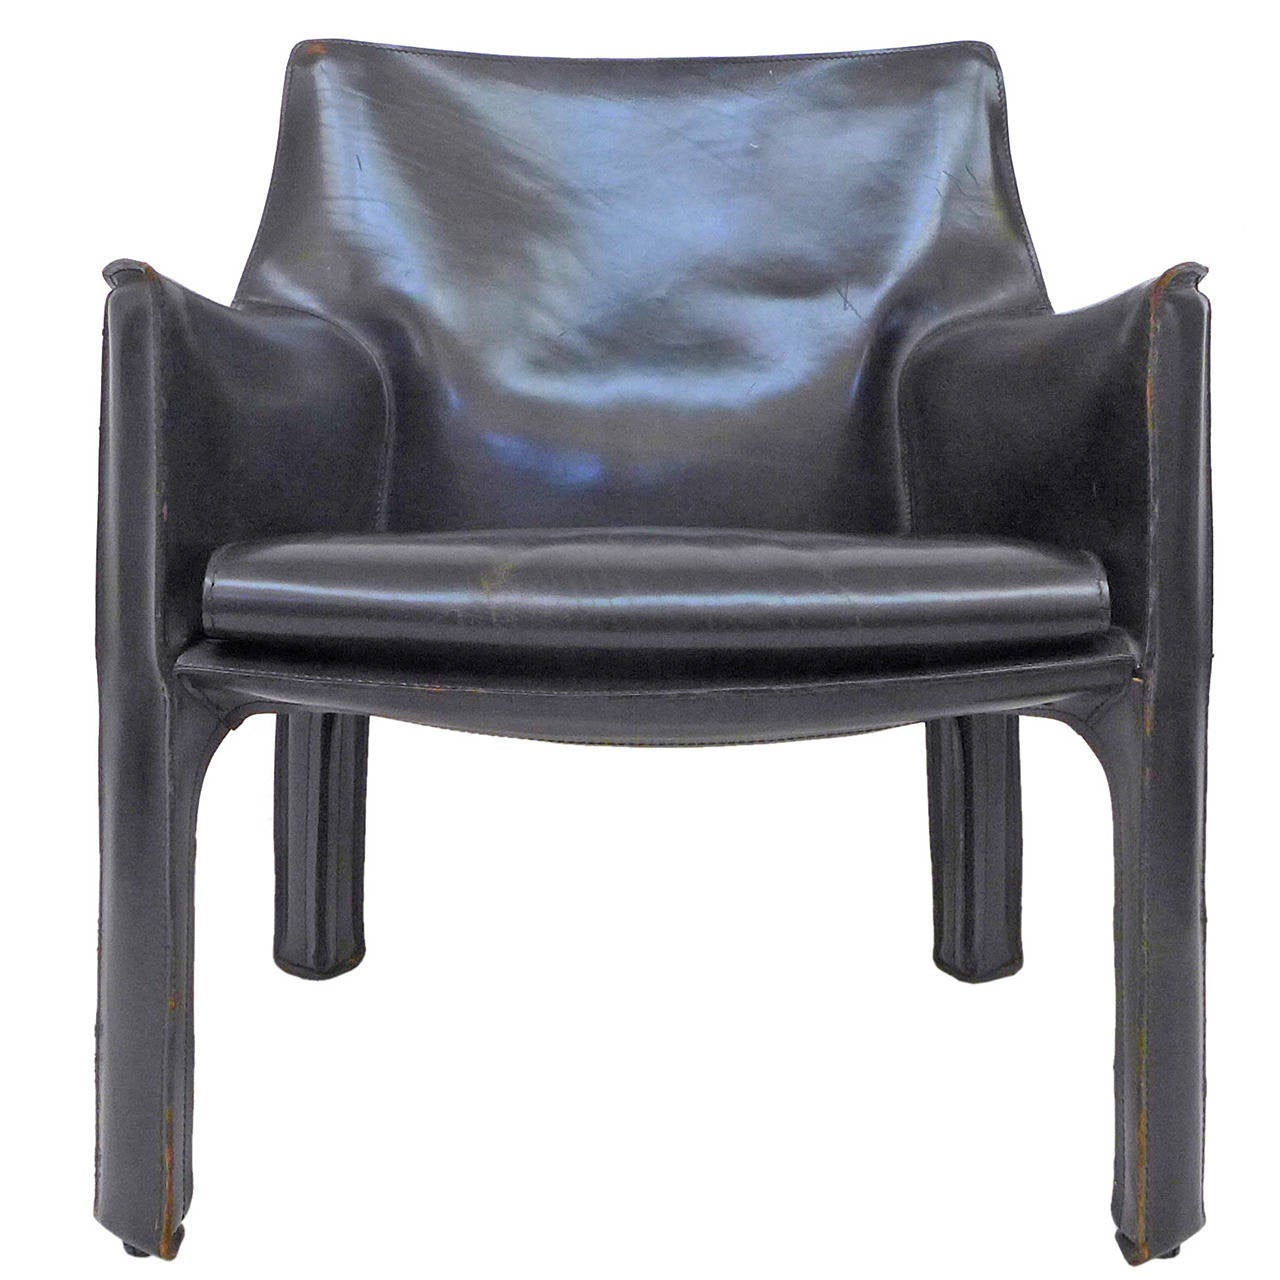 Black Leather CAB Chair by Mario Bellini for Cassina at